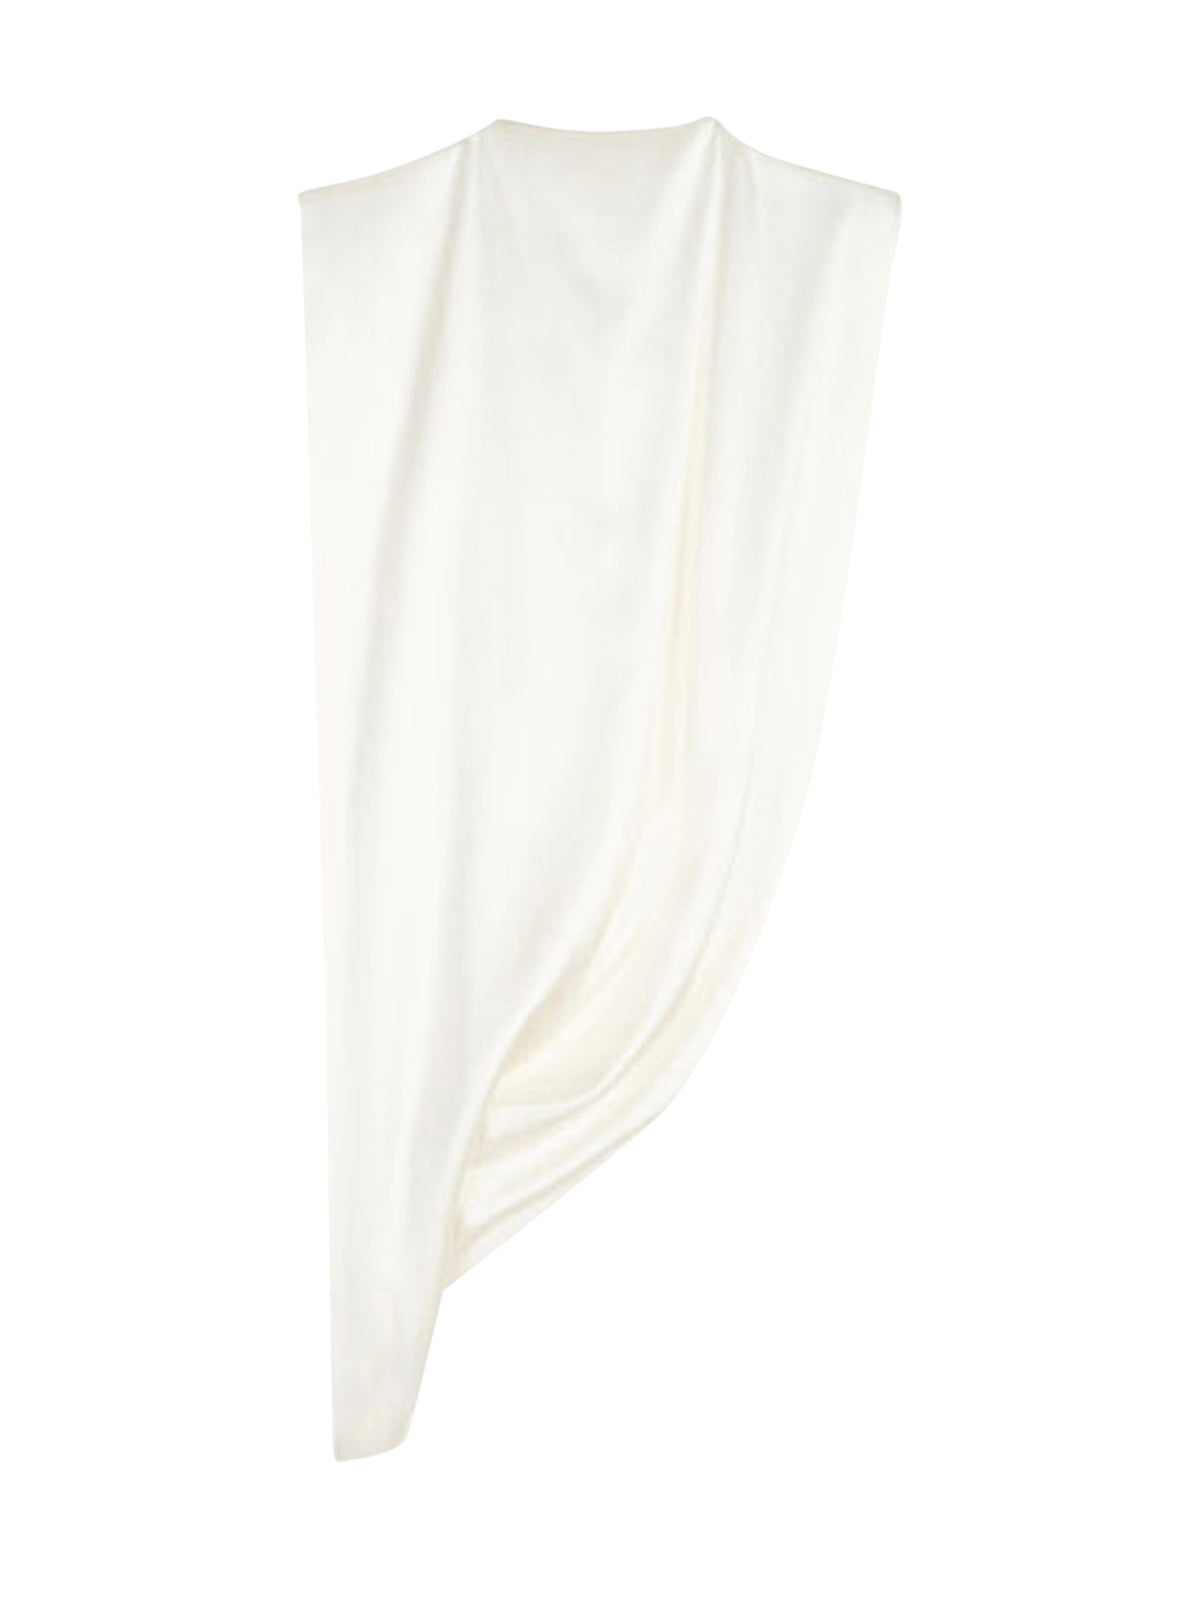 TOP ASYMMETRICAL DRAPE WITH JEWEL RING